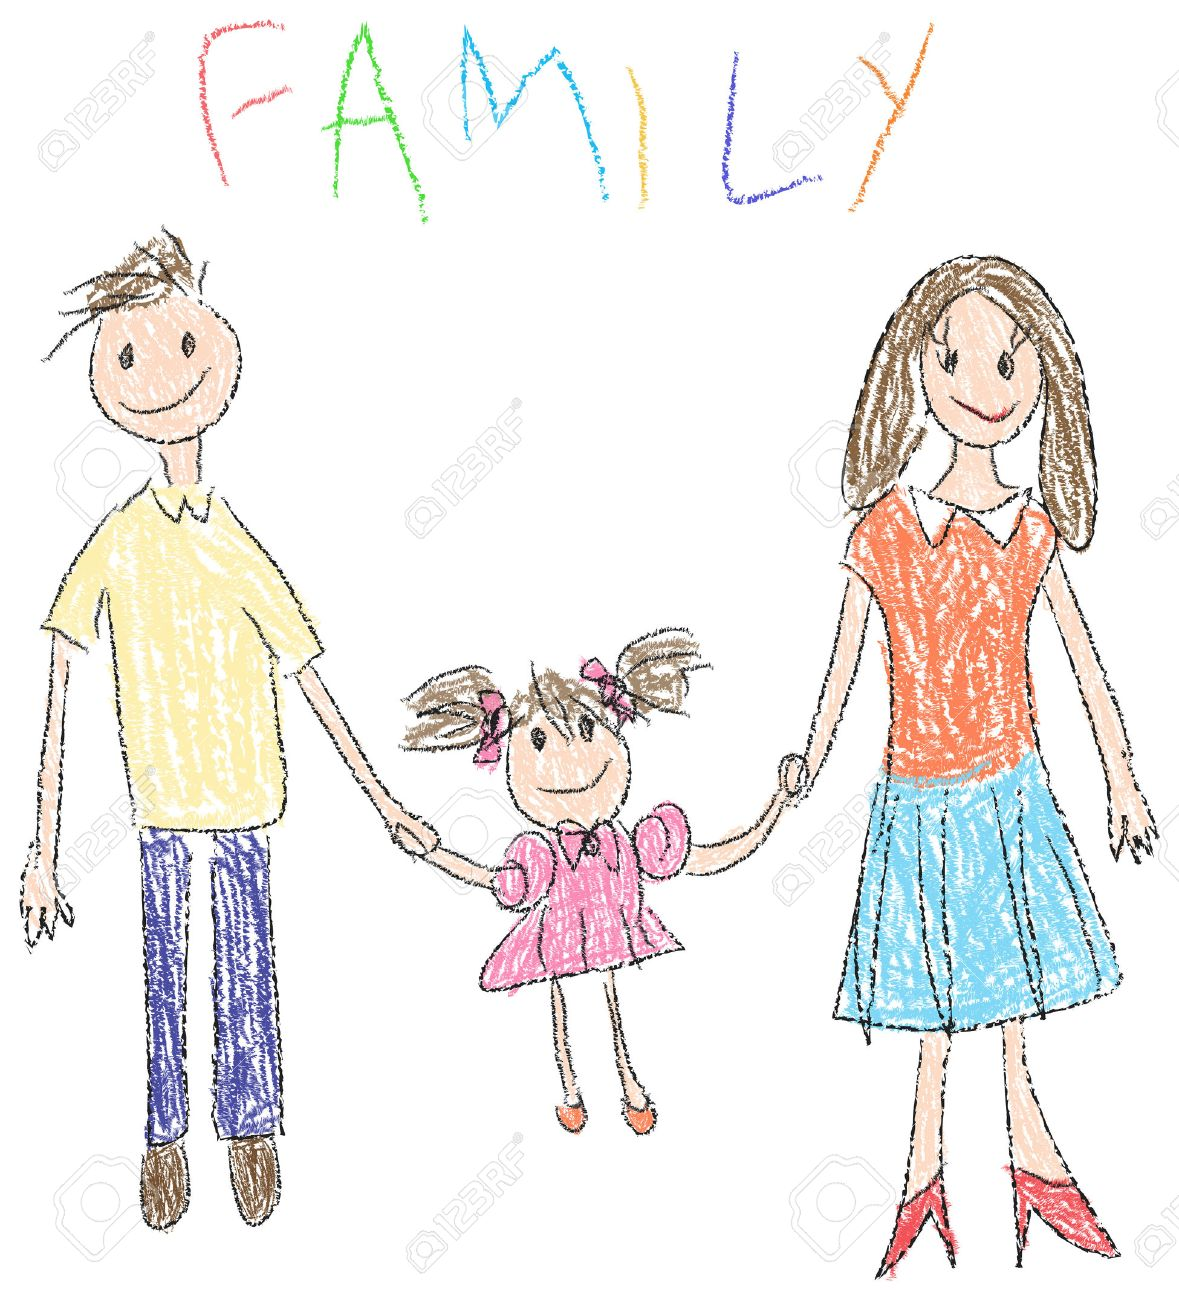 1179x1300 Drawing Of A Happy Familiy With Child And Her Parents